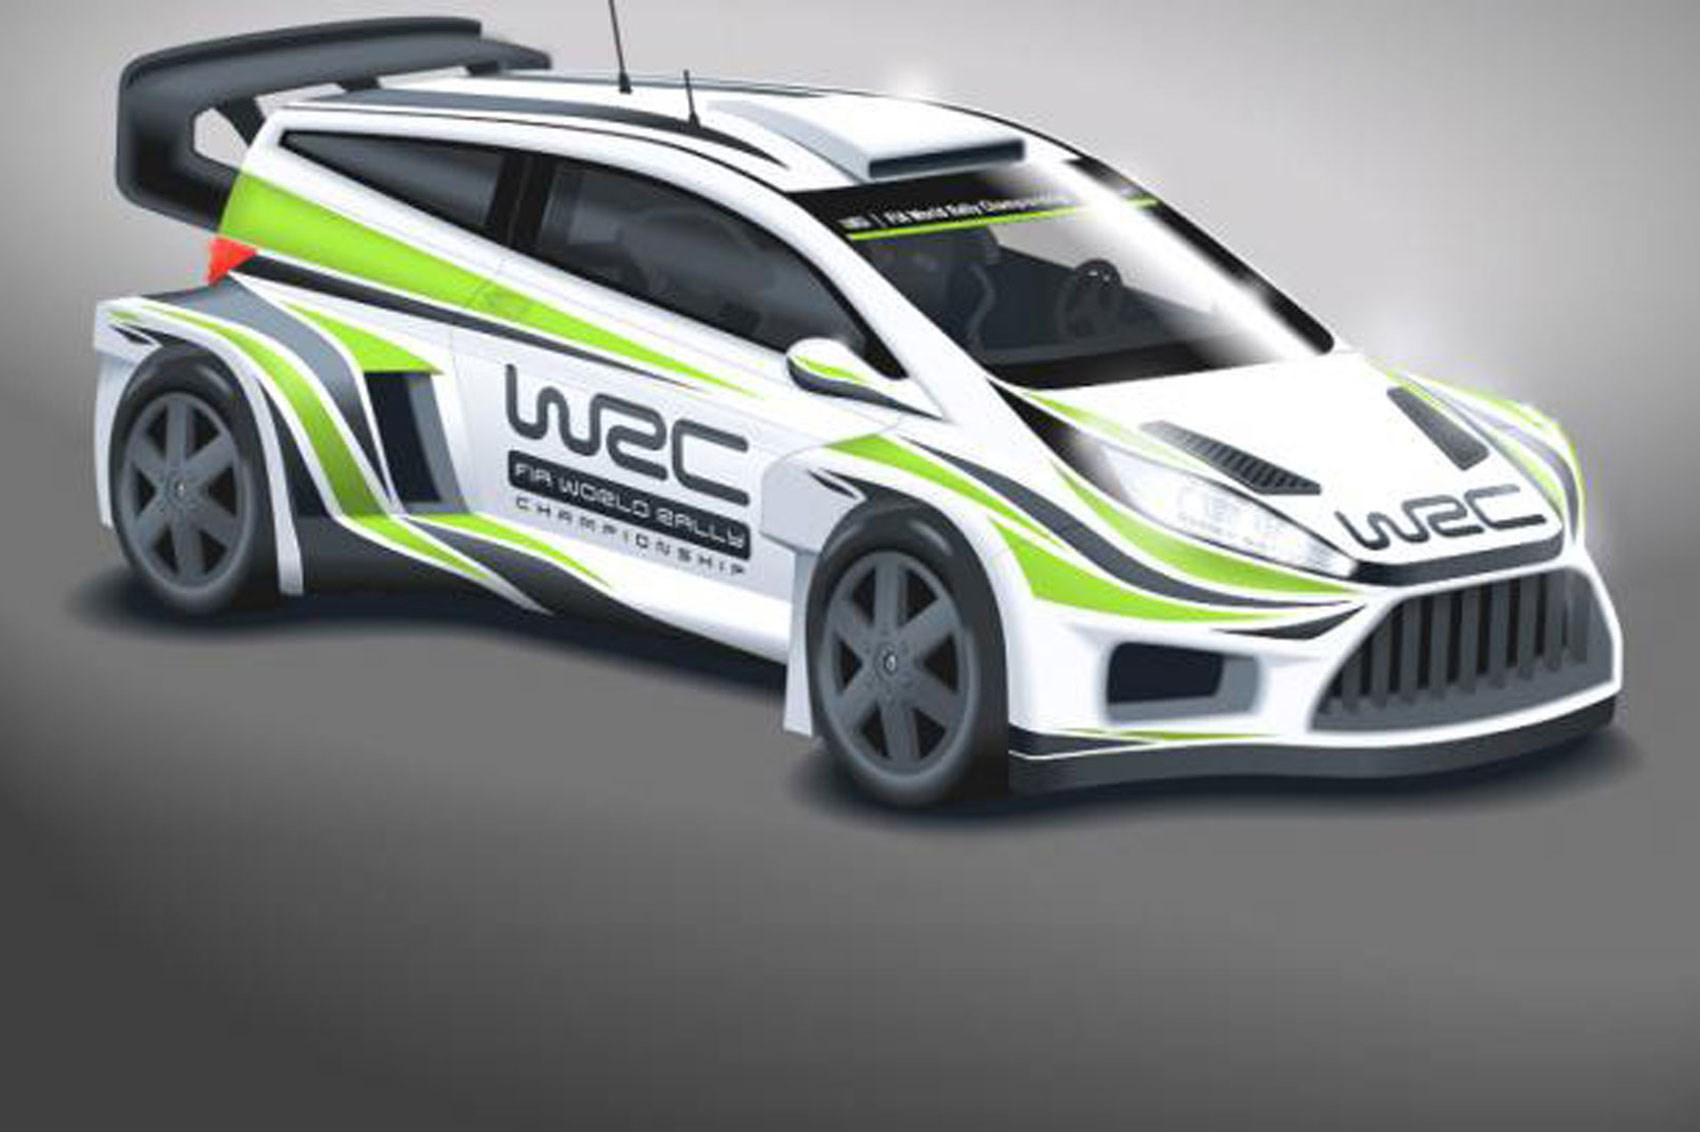 Ultrablogus  Remarkable Wild New Look For Wrc Cars In  By Car Magazine With Fascinating Wrc Cars Will Get Wider Bodies Bigger Wings And More Power For  With Extraordinary Best Car Interior Accessories Also The Interior Space In Addition Bmw E M Interior And Car Interior Protector As Well As Audi Q Interior Colors Additionally Cb Interior From Carmagazinecouk With Ultrablogus  Fascinating Wild New Look For Wrc Cars In  By Car Magazine With Extraordinary Wrc Cars Will Get Wider Bodies Bigger Wings And More Power For  And Remarkable Best Car Interior Accessories Also The Interior Space In Addition Bmw E M Interior From Carmagazinecouk